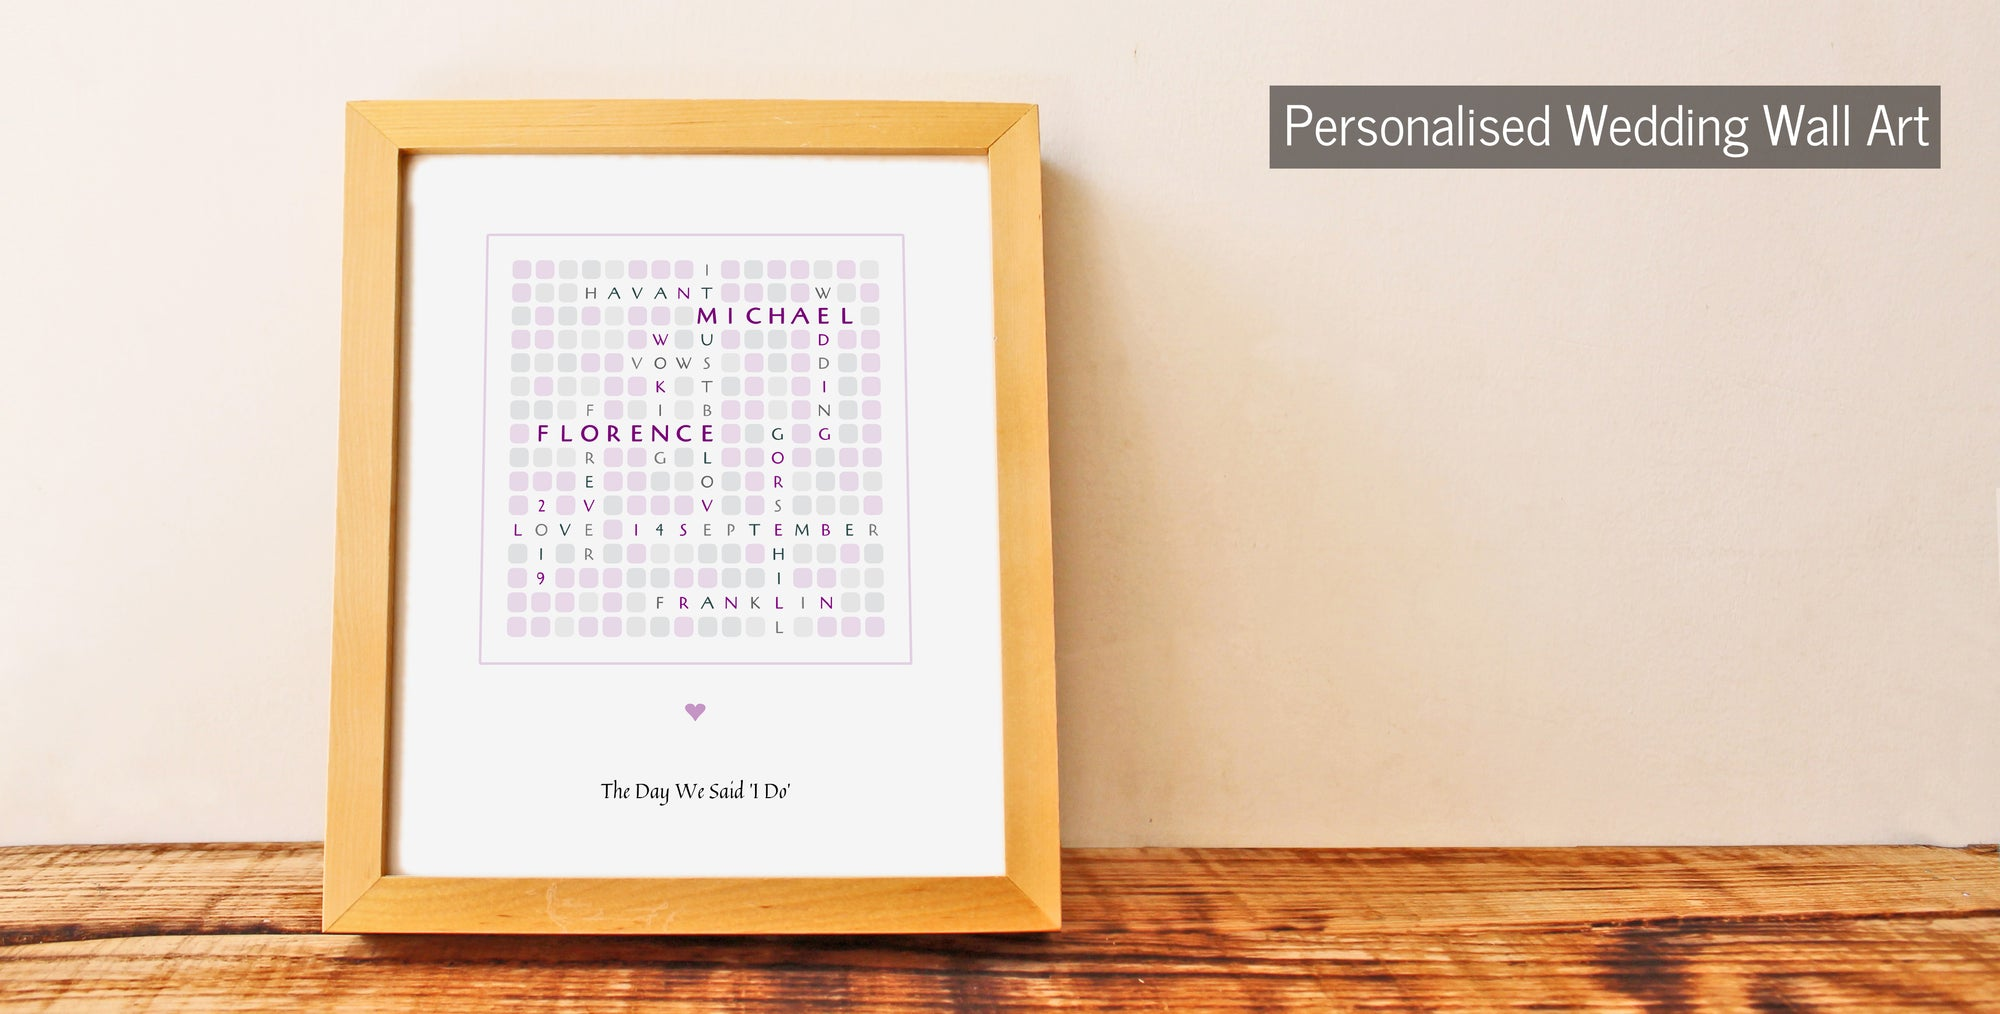 Personalised Wedding Wall Art